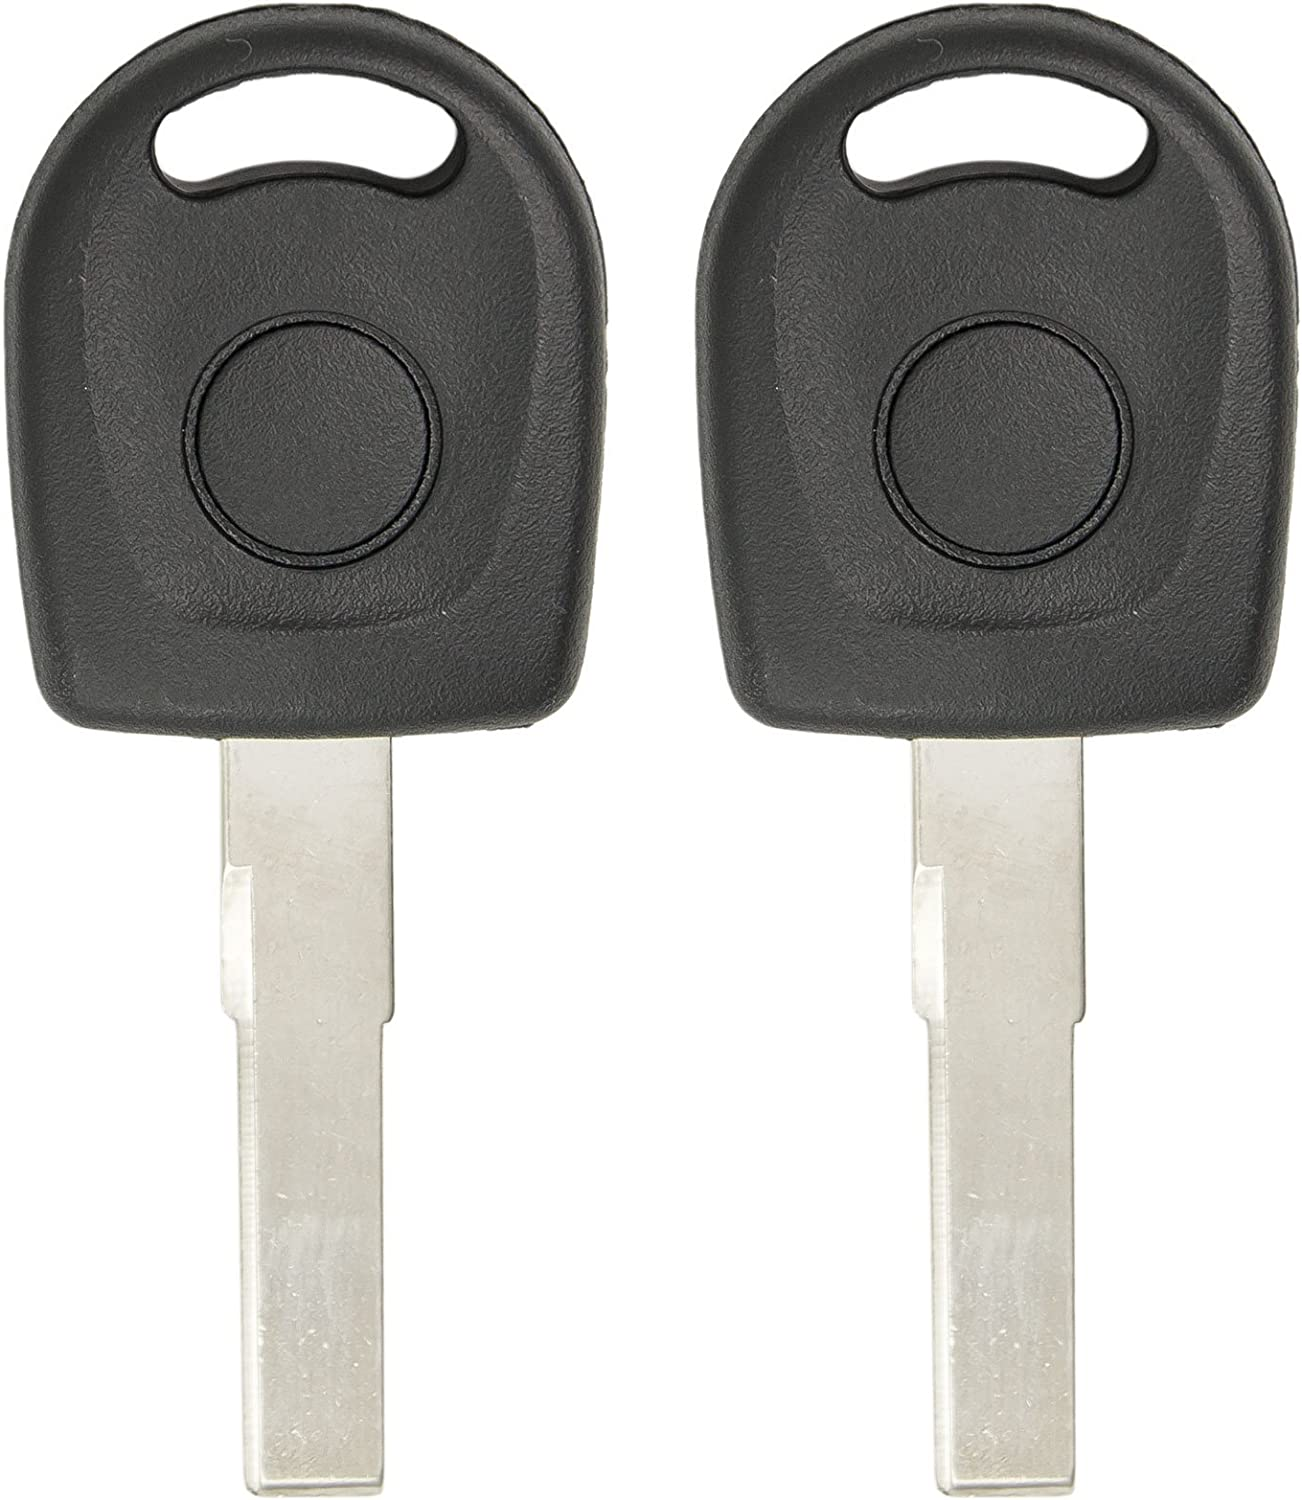 2 Pack Keyless2Go New Uncut Replacement Transponder Ignition Megamos 48 Chip Car Key HU66T6